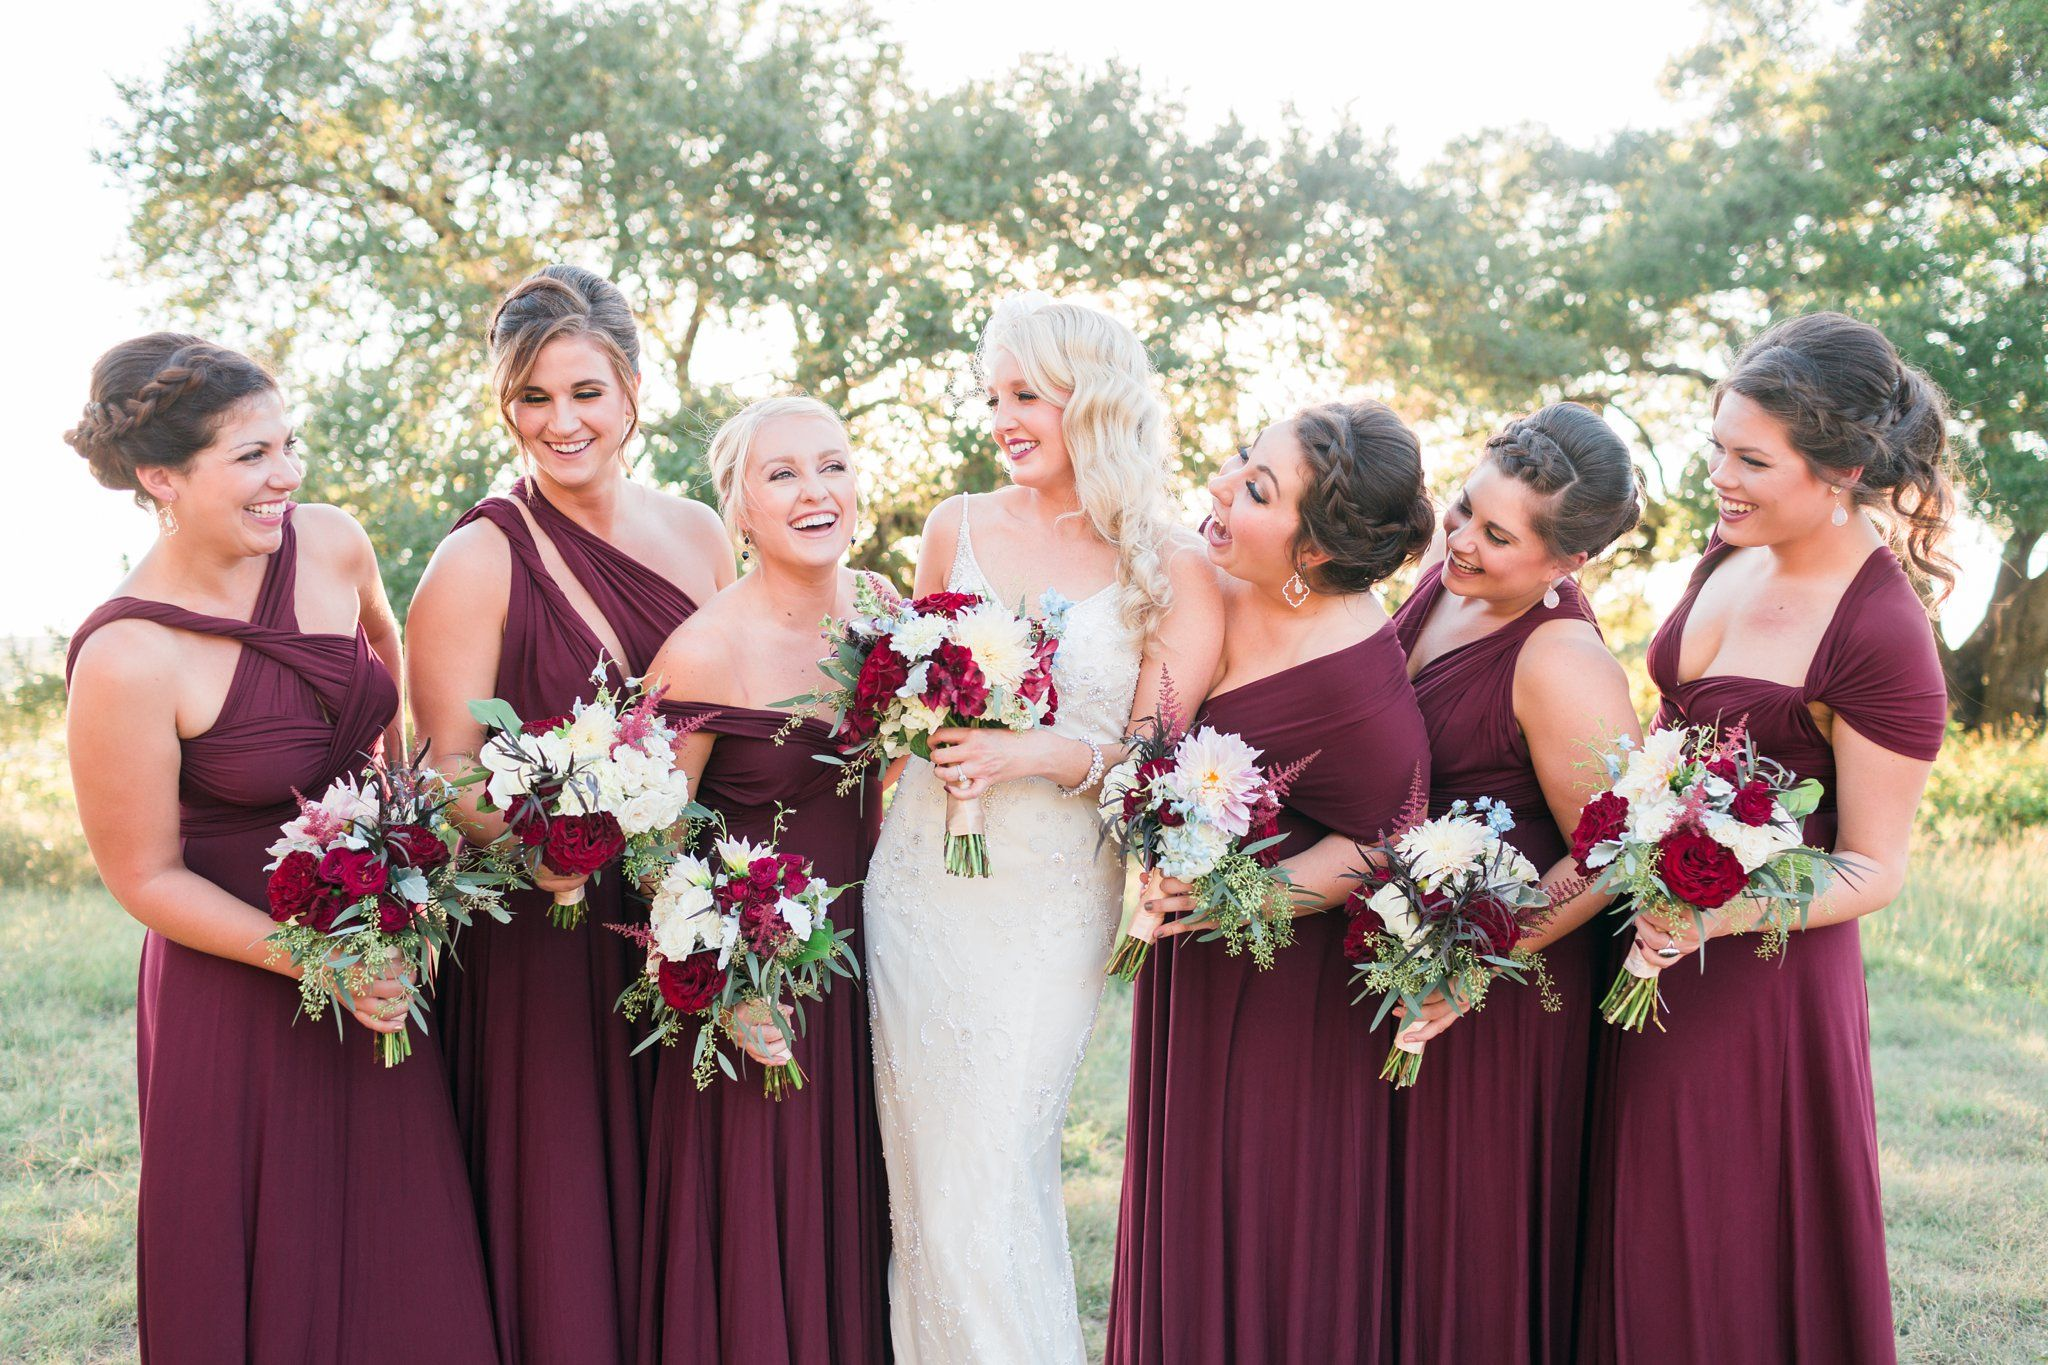 Austin wedding thurmans mansion dripping springs burgundy austin wedding thurmans mansion dripping springs burgundy lulus bridesmaids wrap dresses austin wedding ombrellifo Image collections